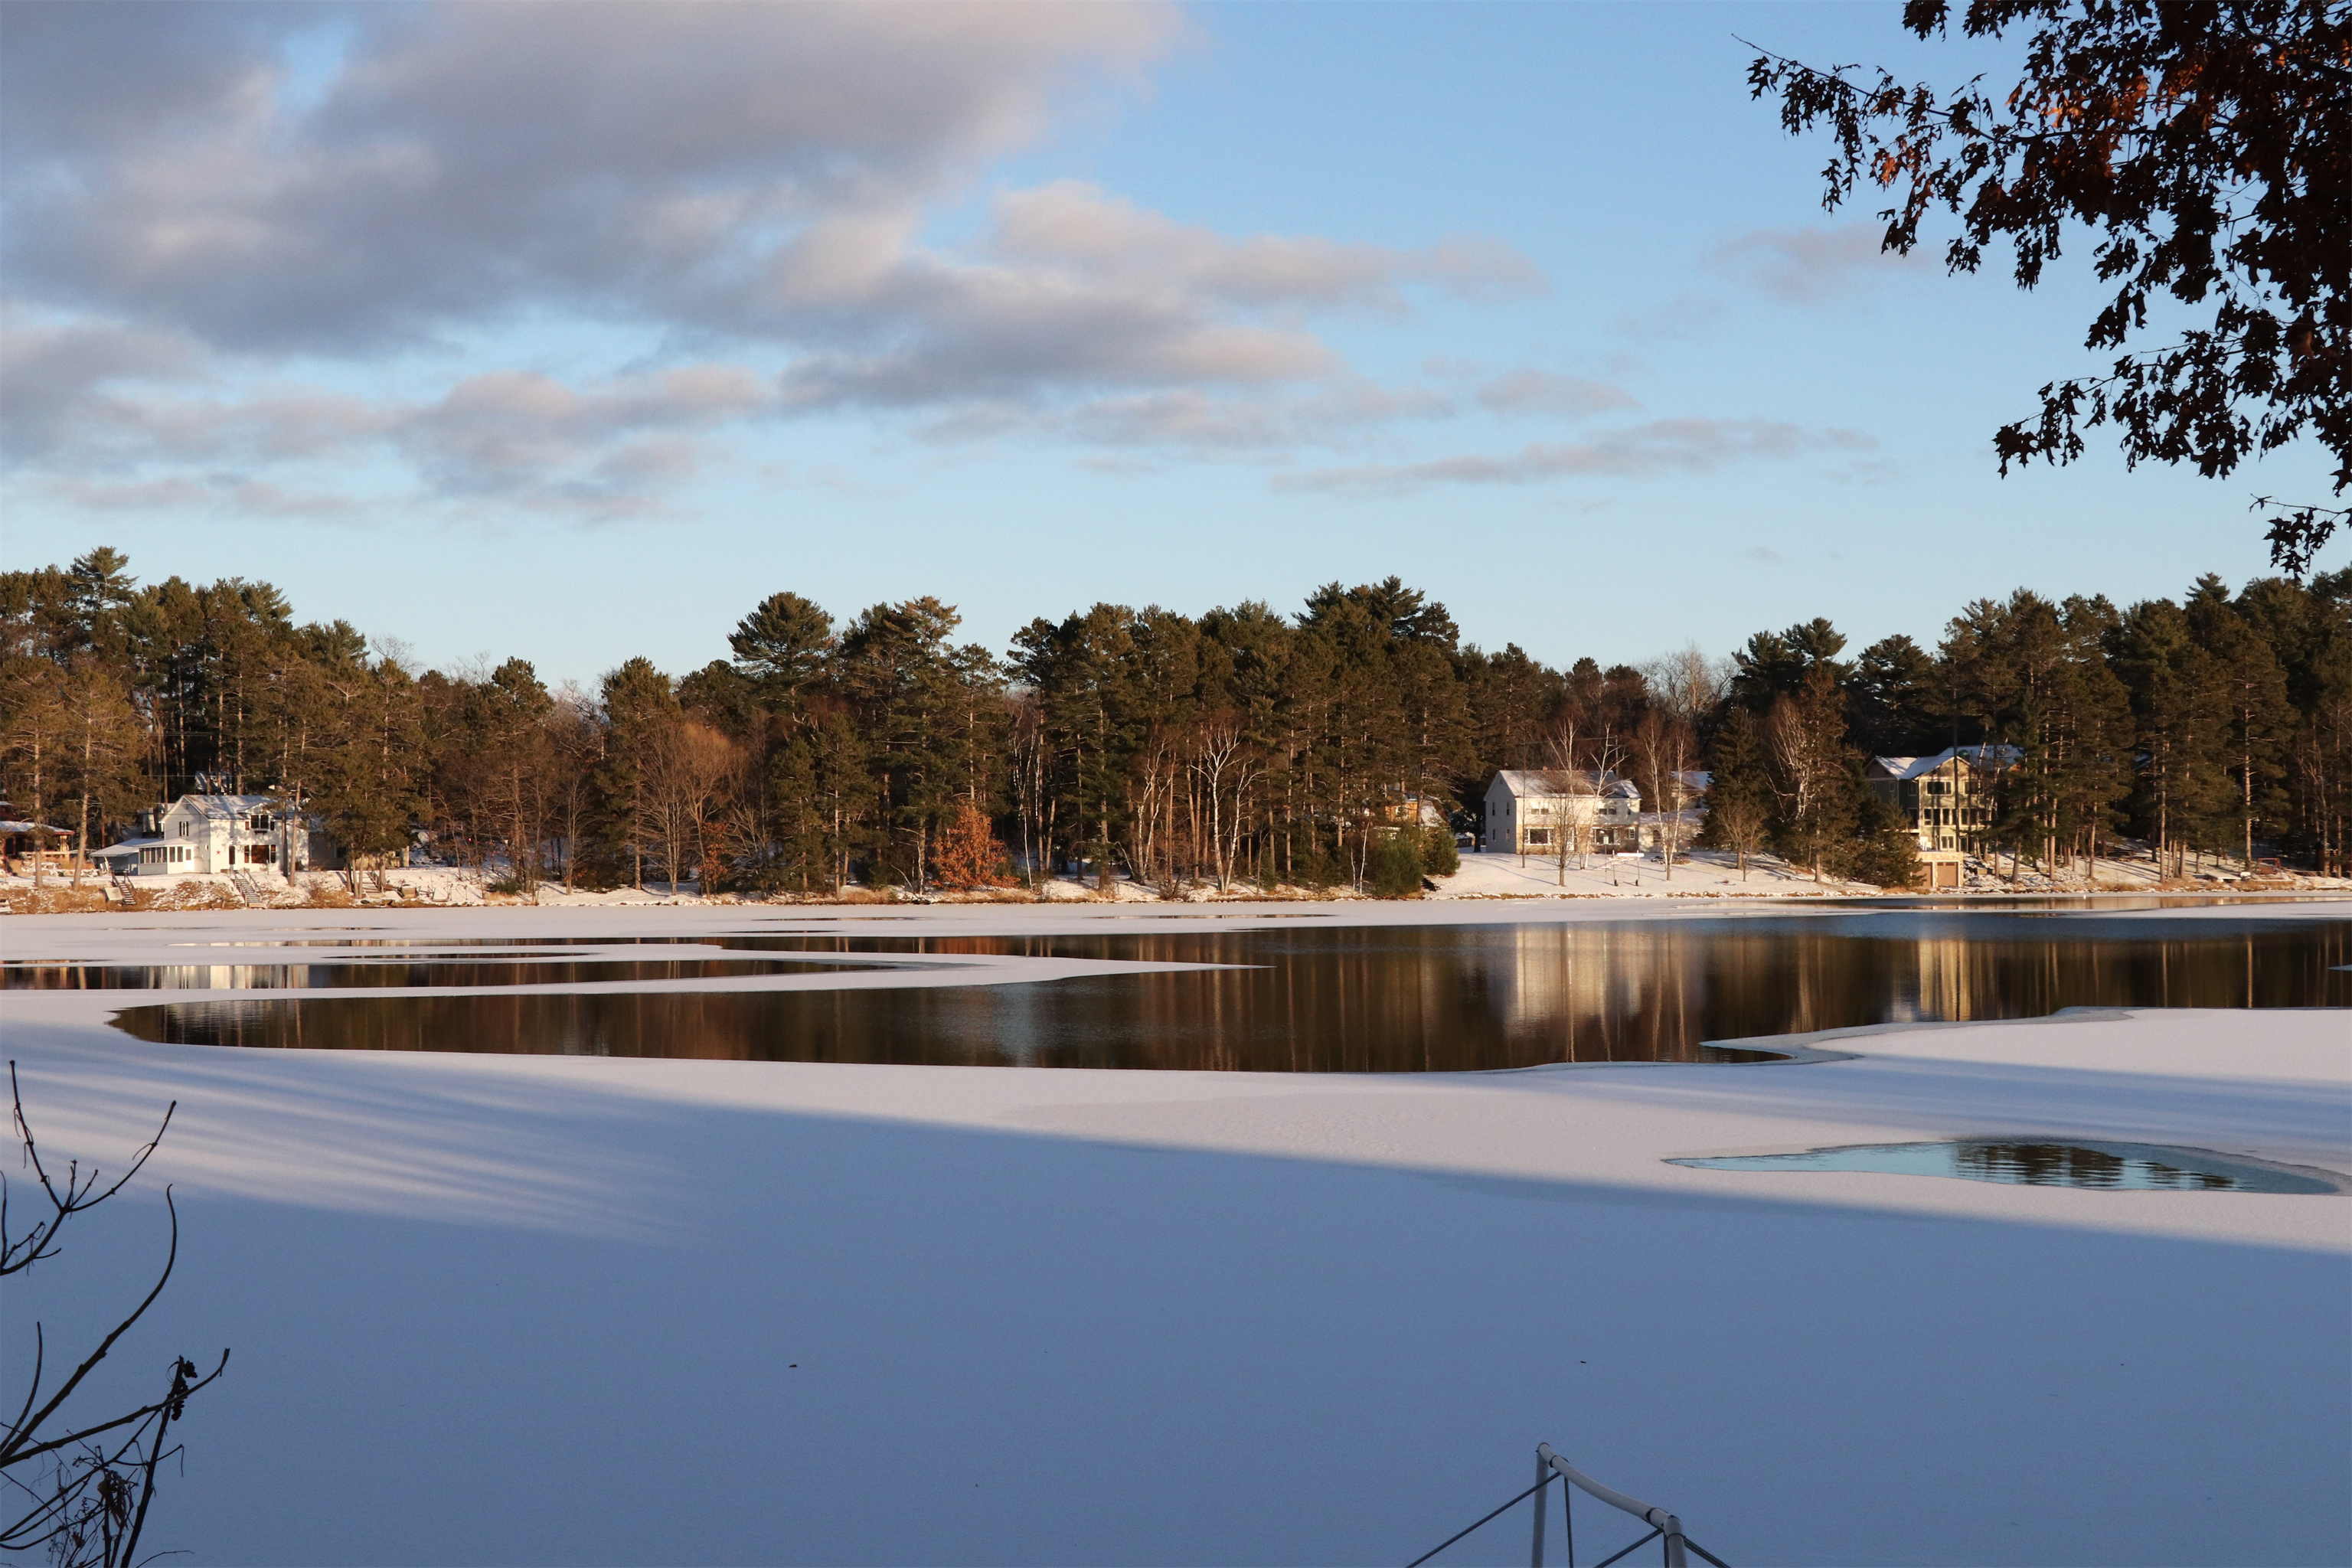 A beautiful winter view of Schoolhouse Bay, Lake Minocqua. Kim Johnson photo